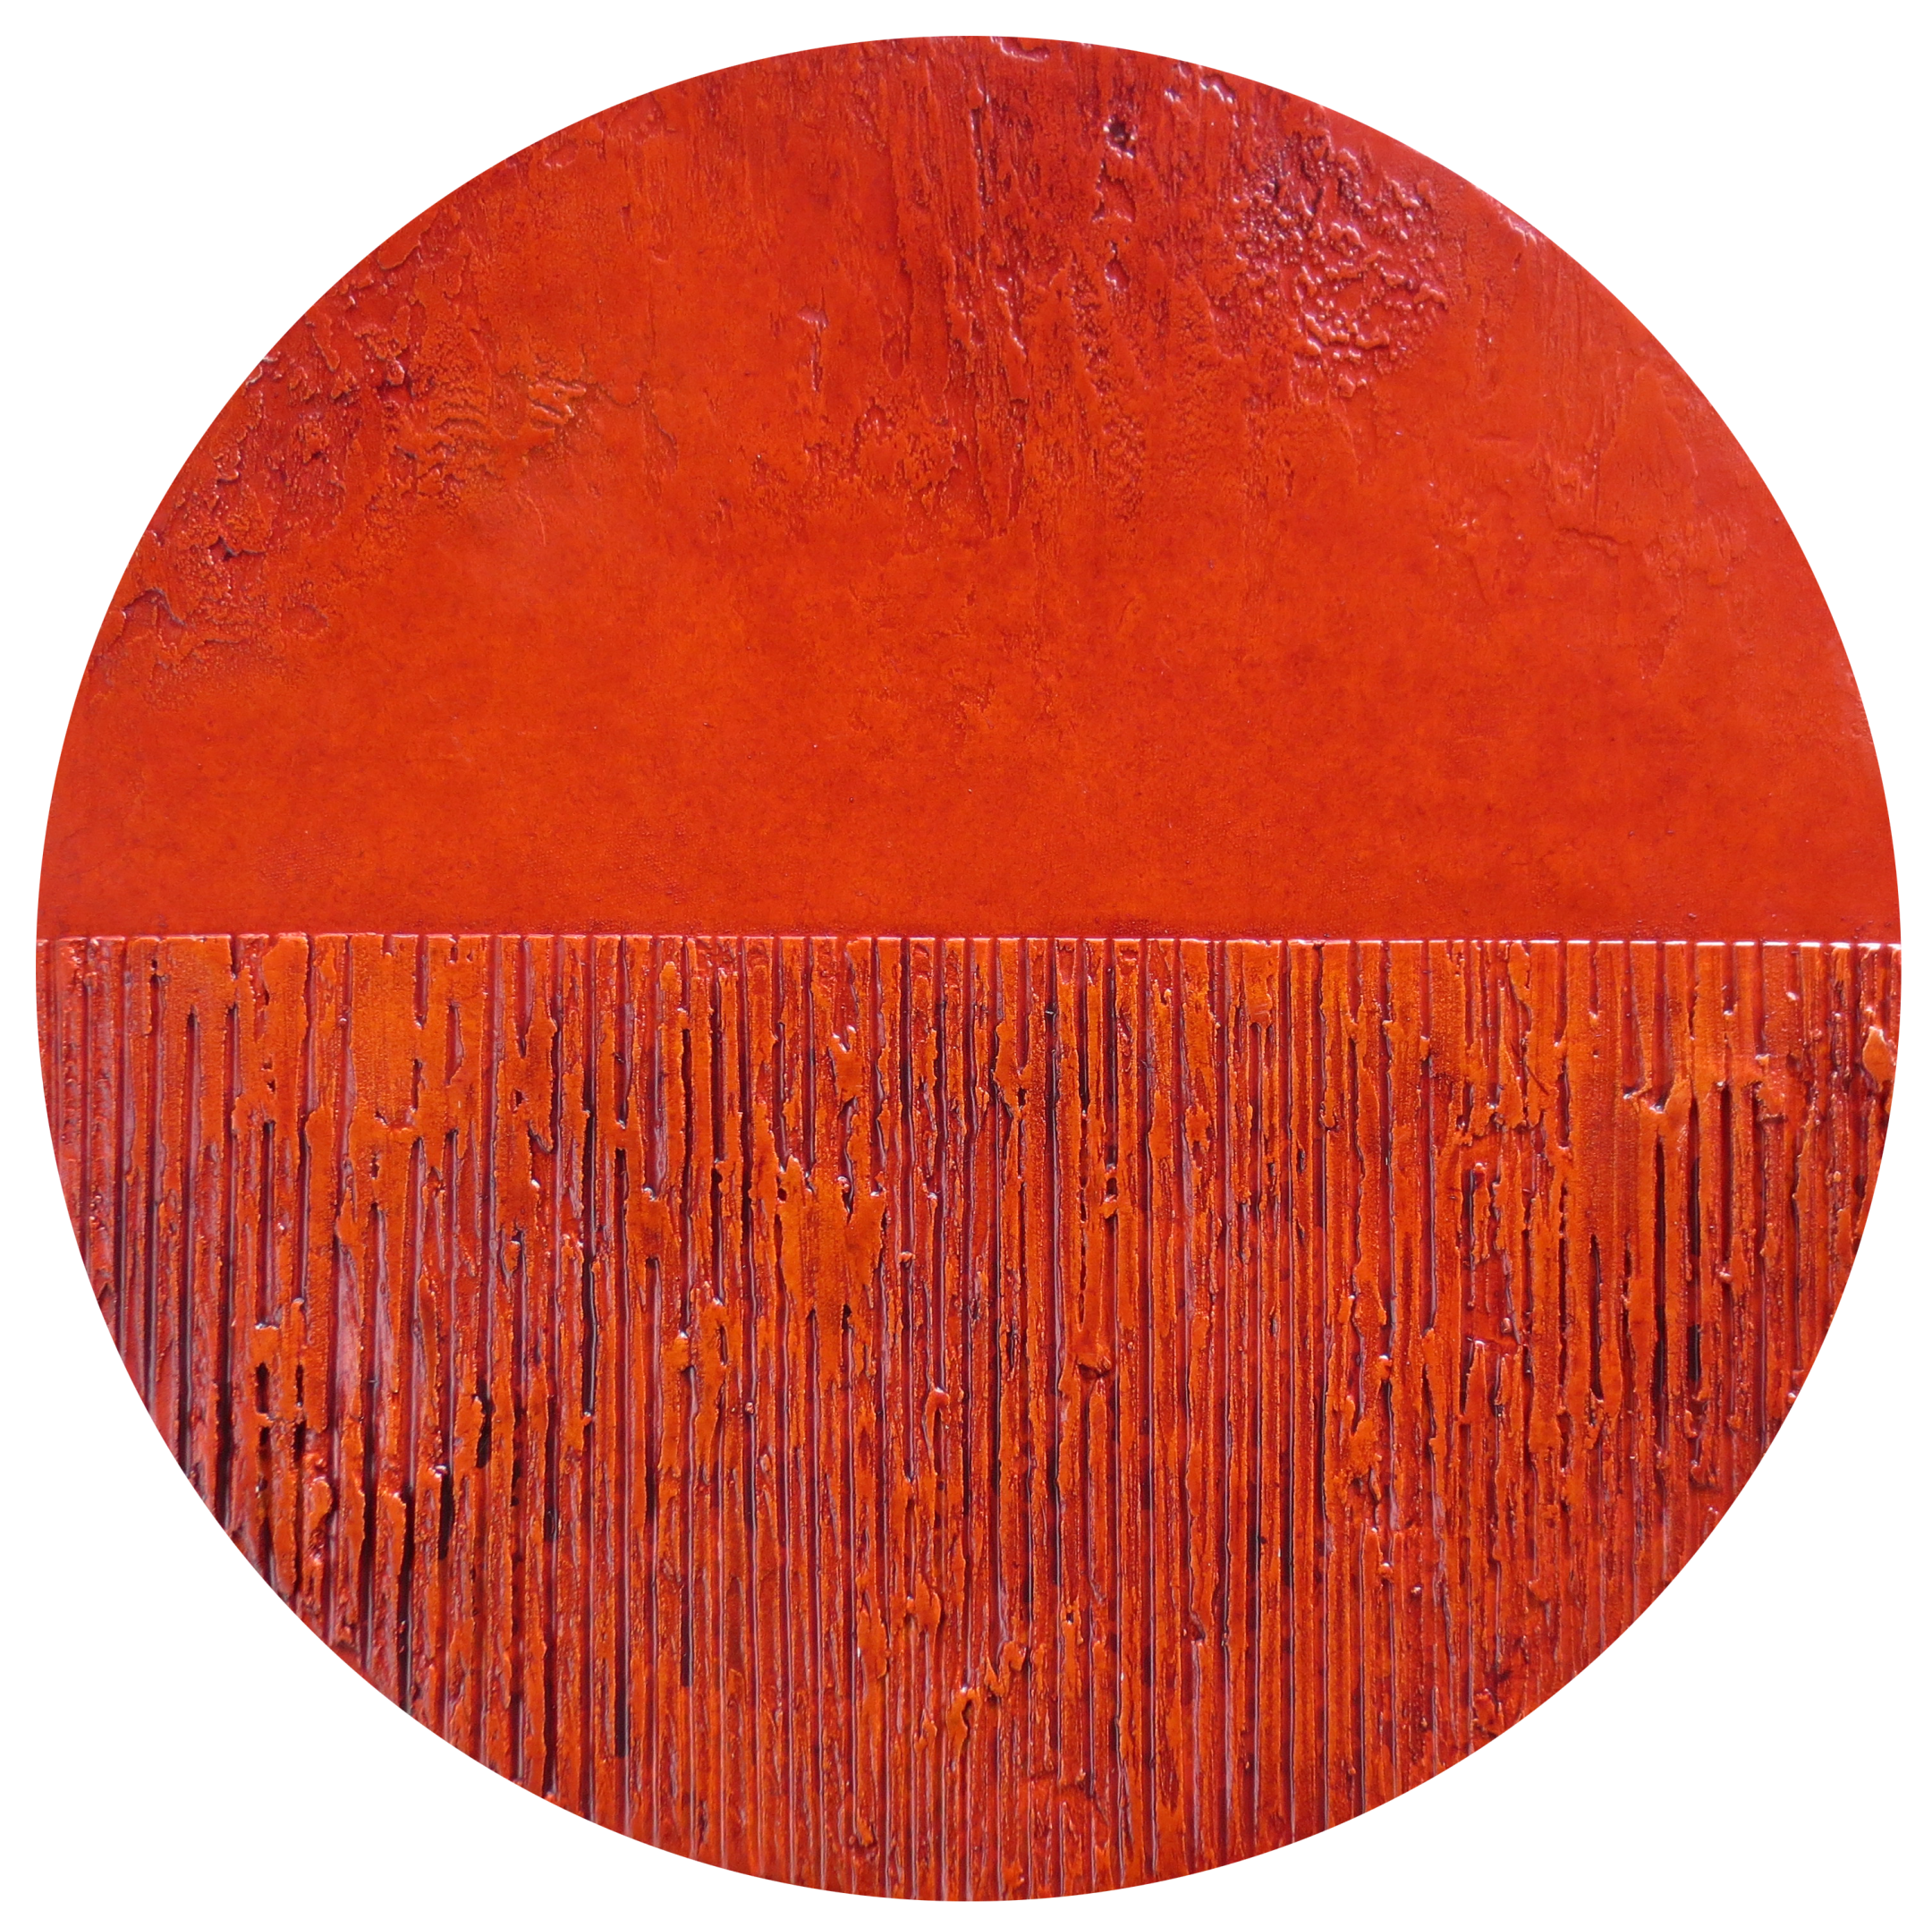 Abstract art Small Orange Round 3 by Patterson Parkin